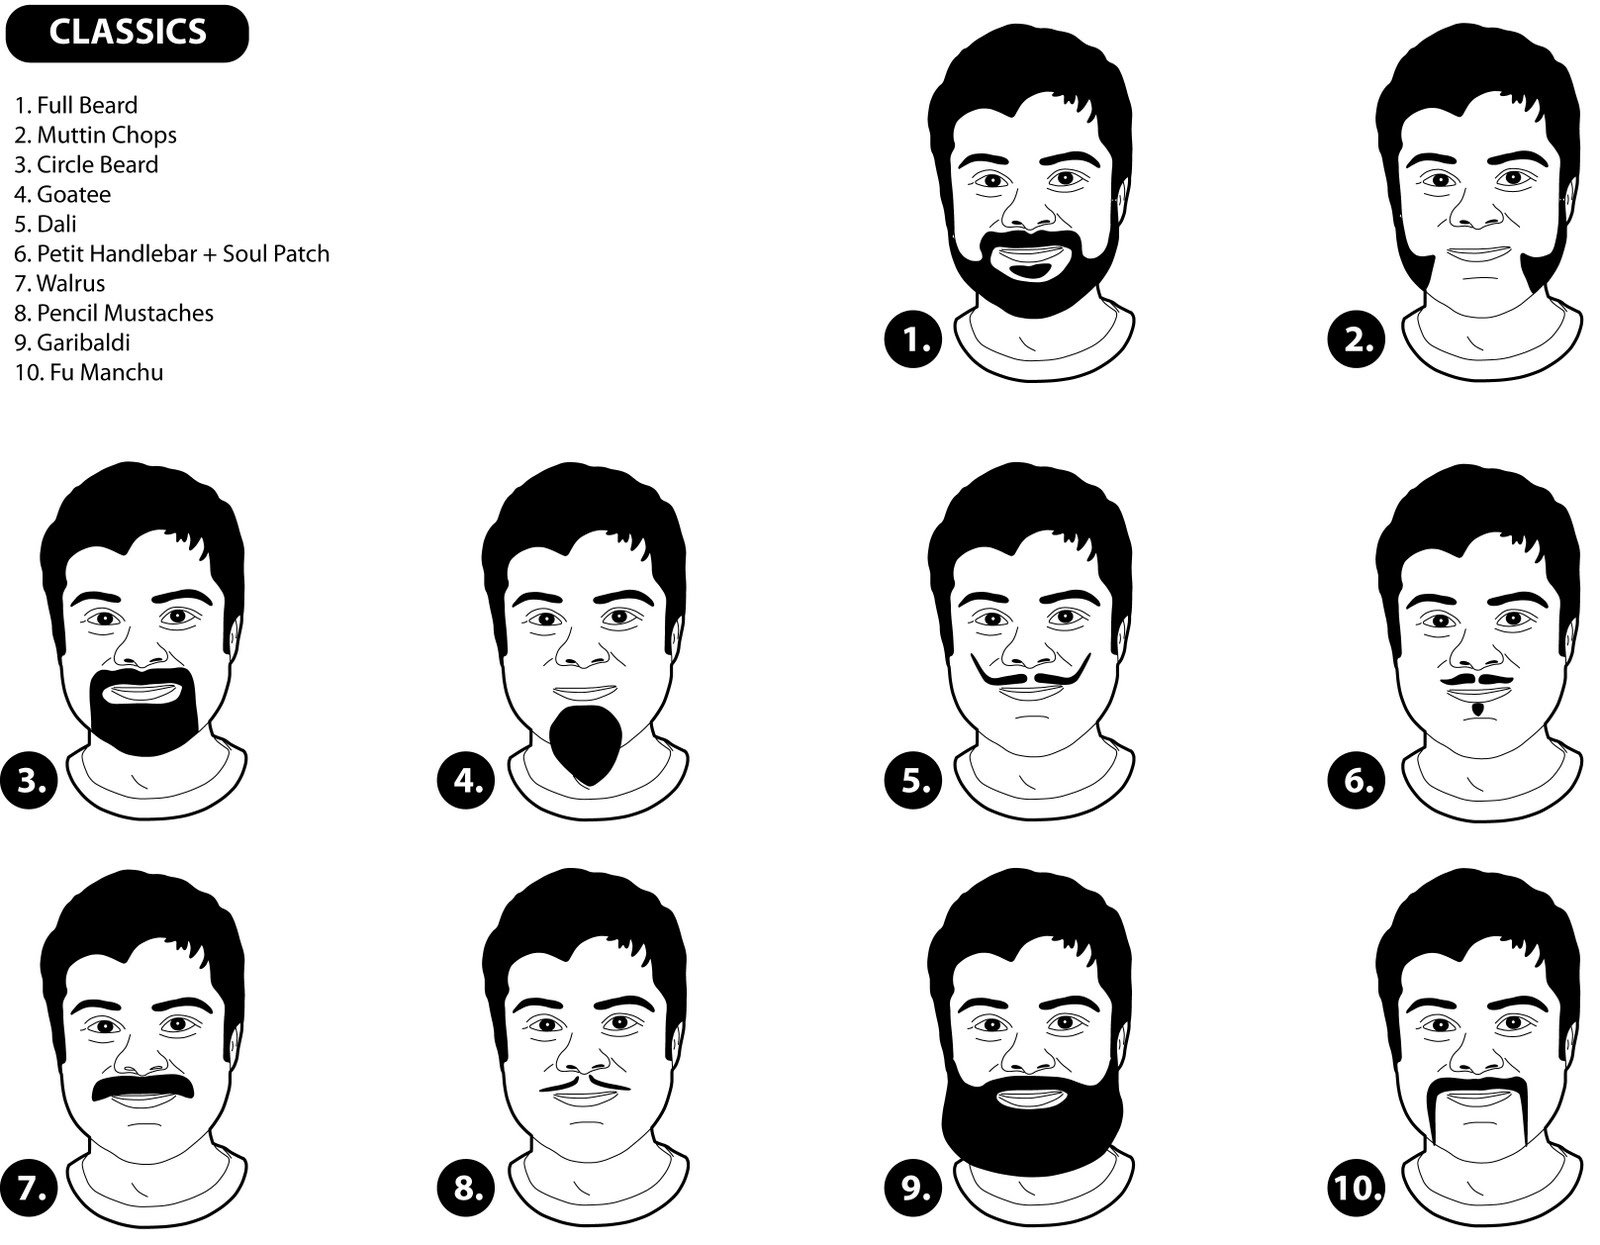 Learn by Diagram: Learn about facial hair styling